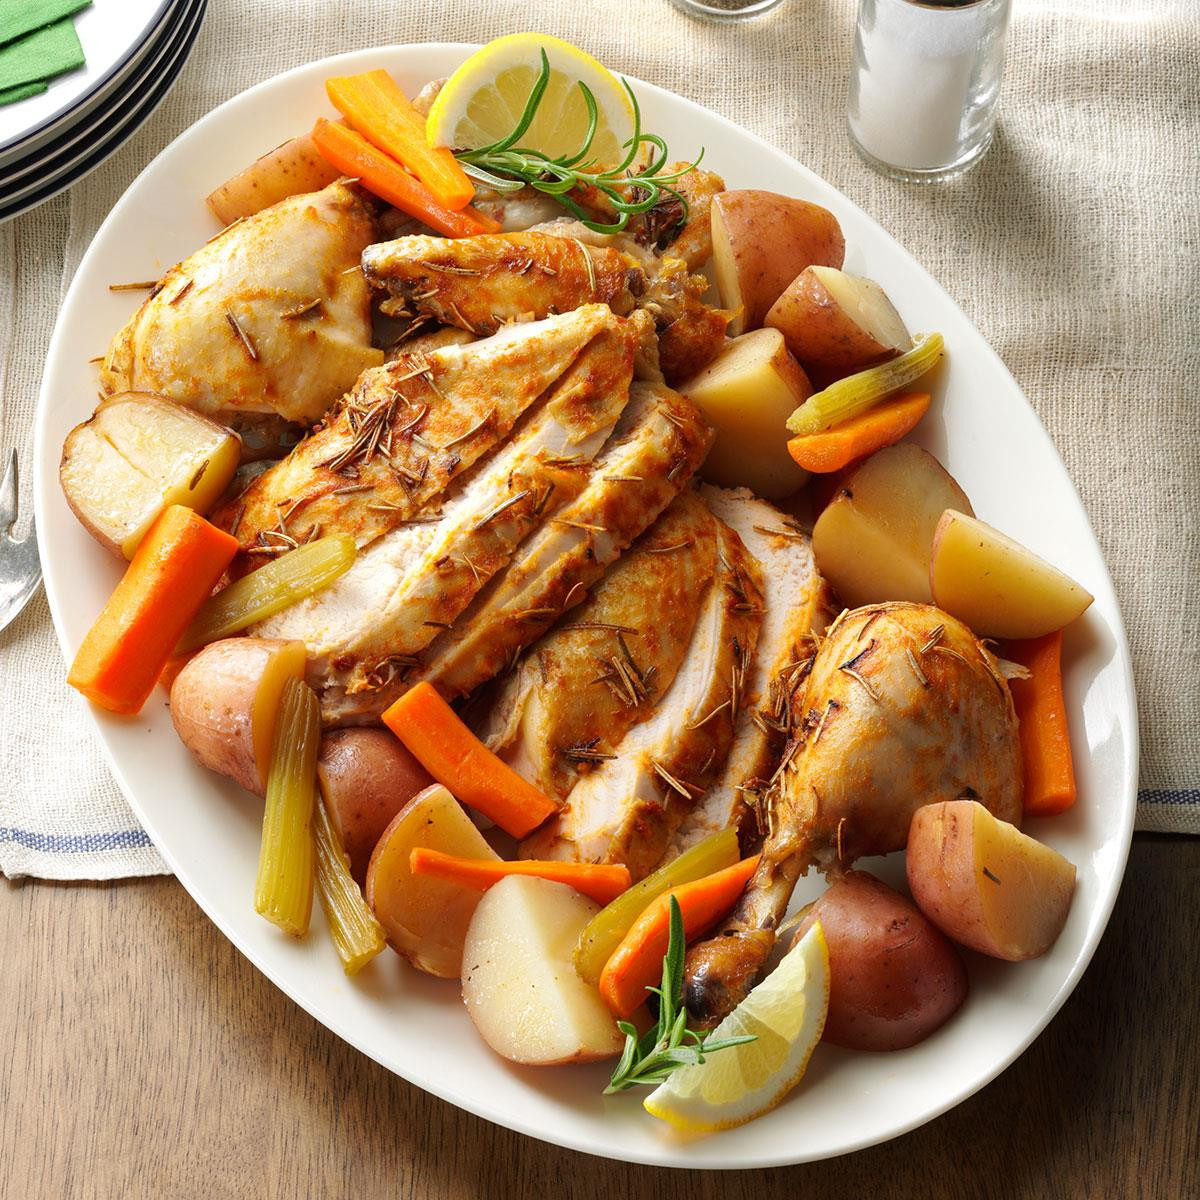 Baked Chicken And Vegetables  Slow Roasted Chicken with Ve ables Recipe